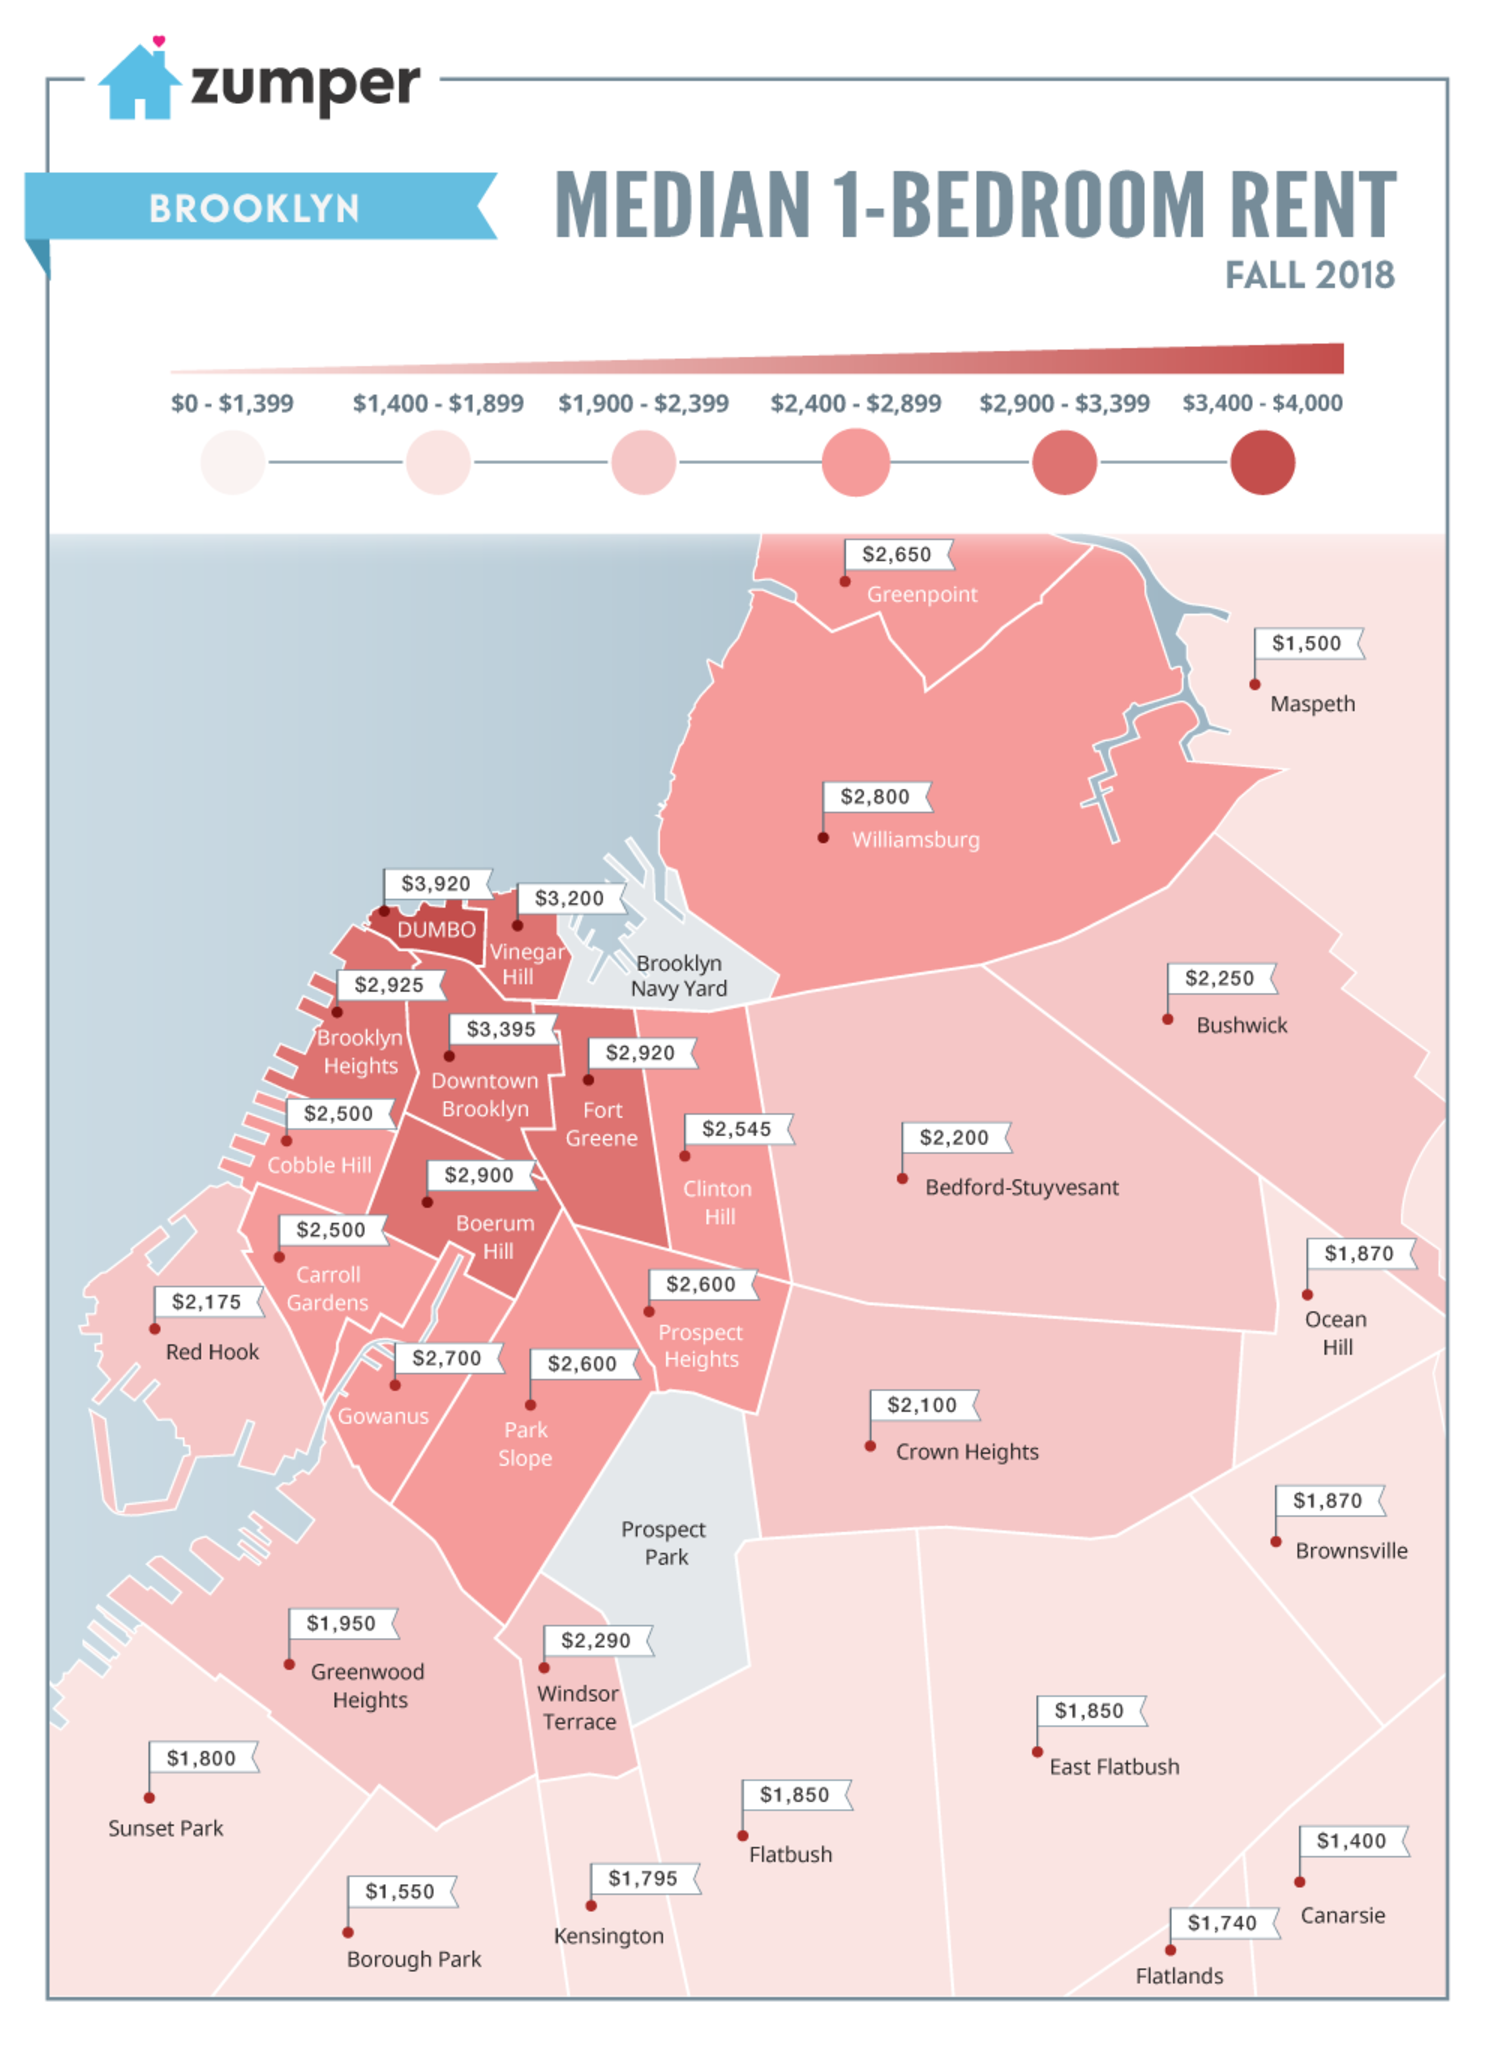 Brooklyn Median 1-Bedroom Rent Fall 2018